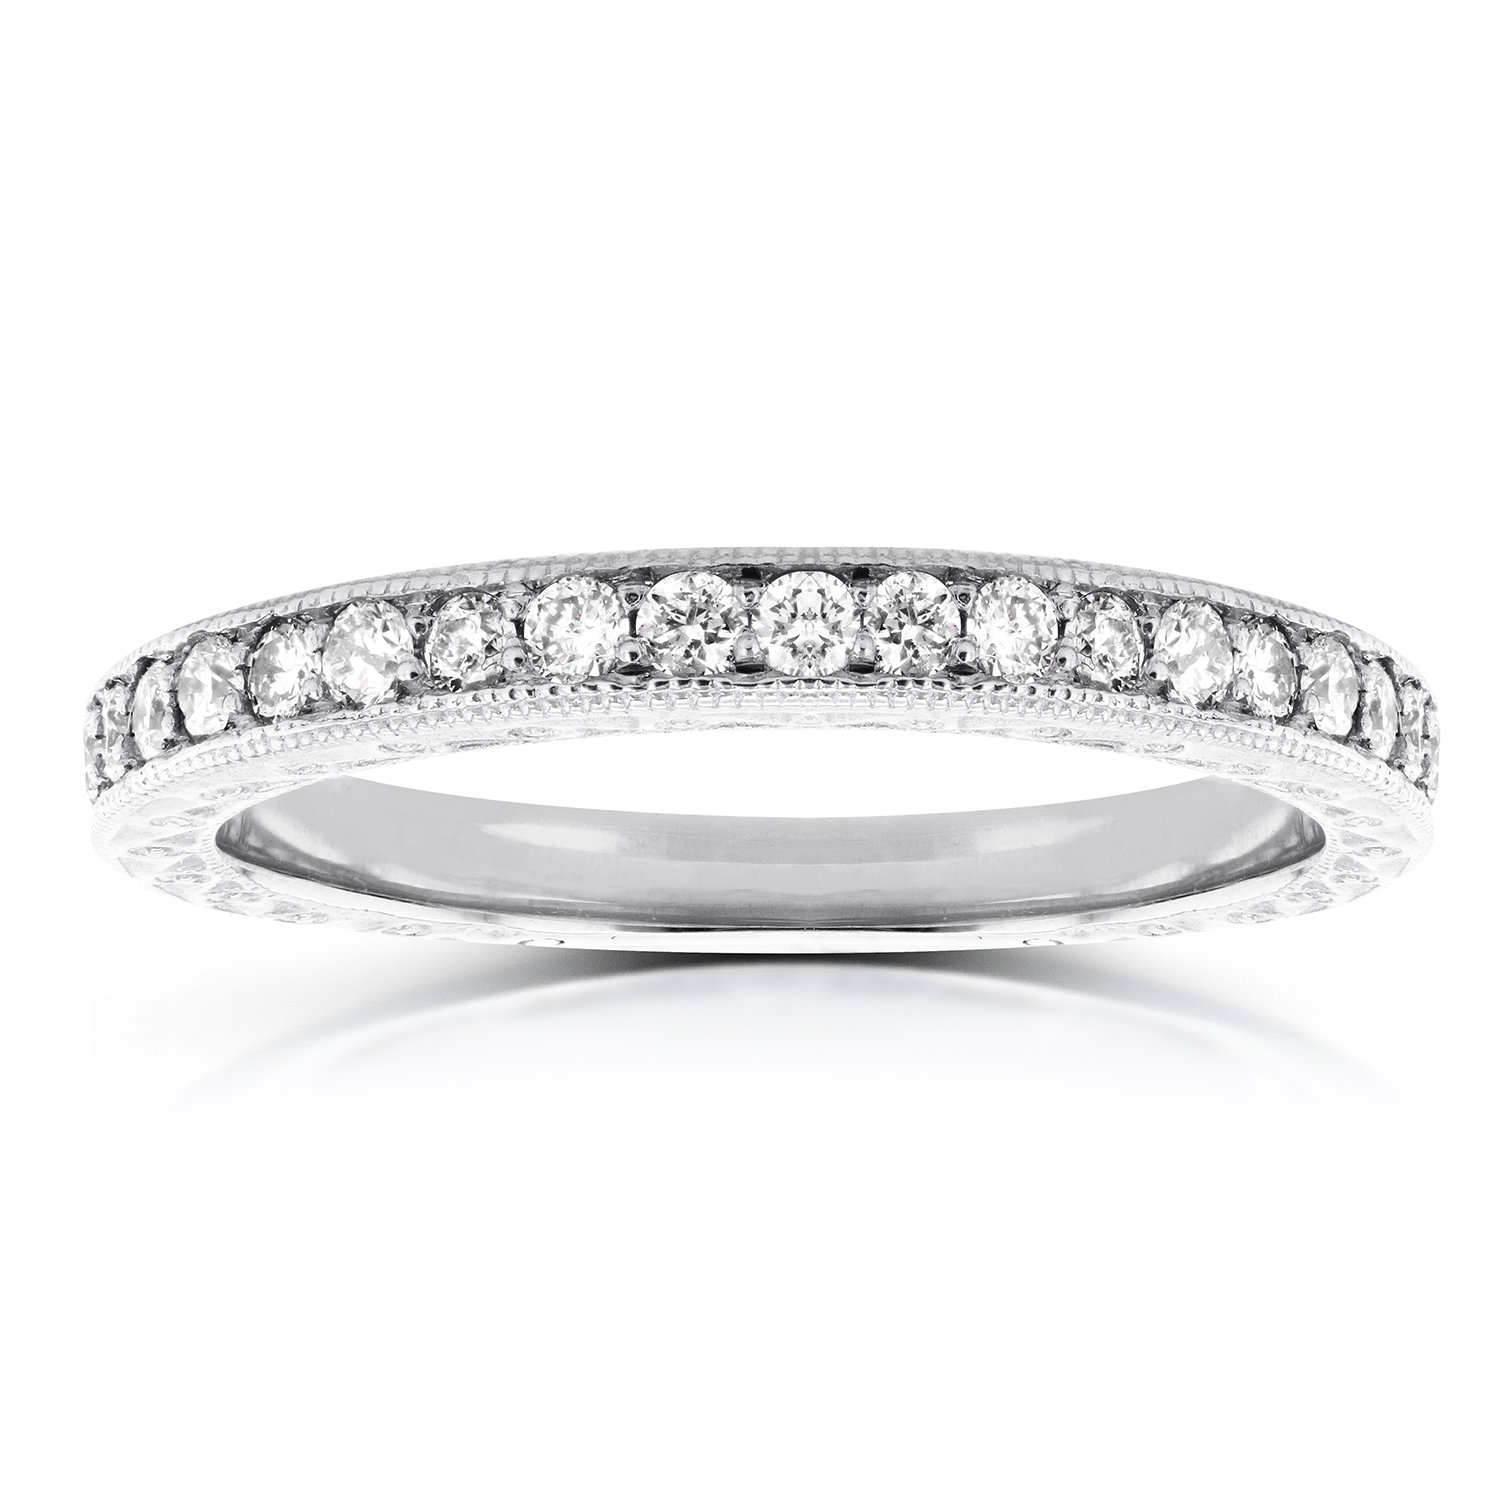 Round Diamond Antique Band 1/3 CTW in 14k White Gold, Size 6.5 by Kobelli